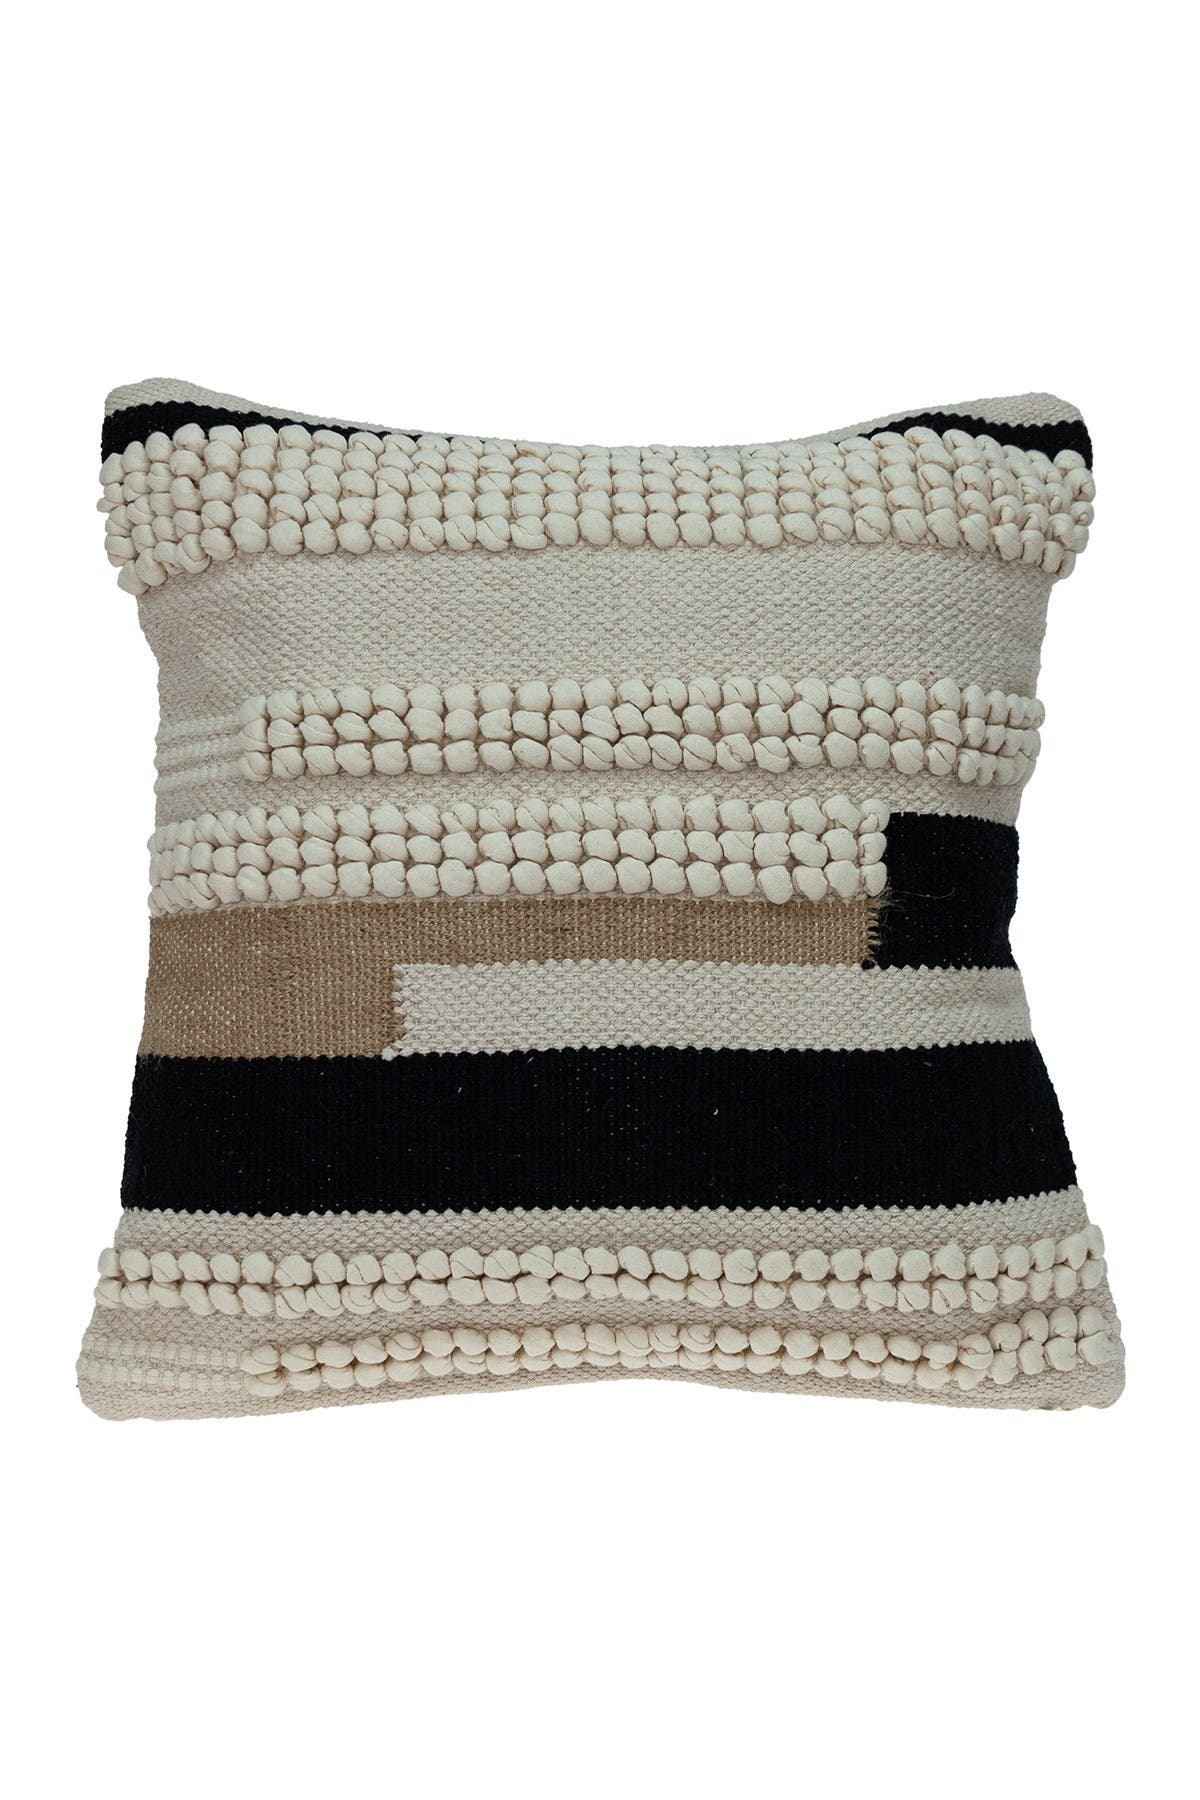 Image of Parkland Collection Maddox Transitional Ivory Throw Pillow